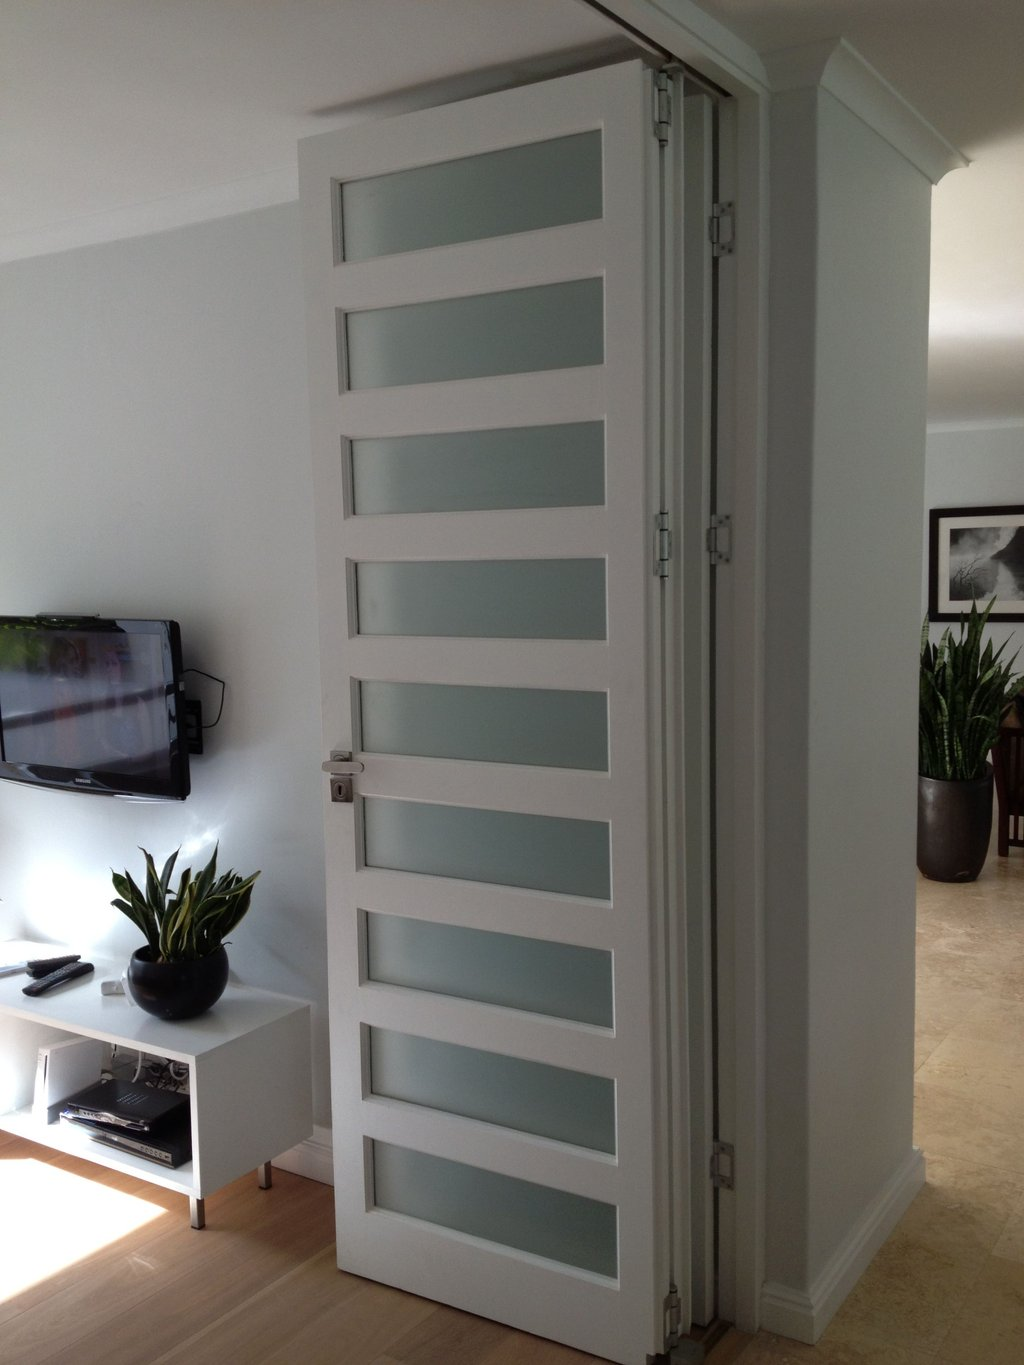 Folding Room Divider Door Window Decor Www Folding Room Dividers Are Best Ideas